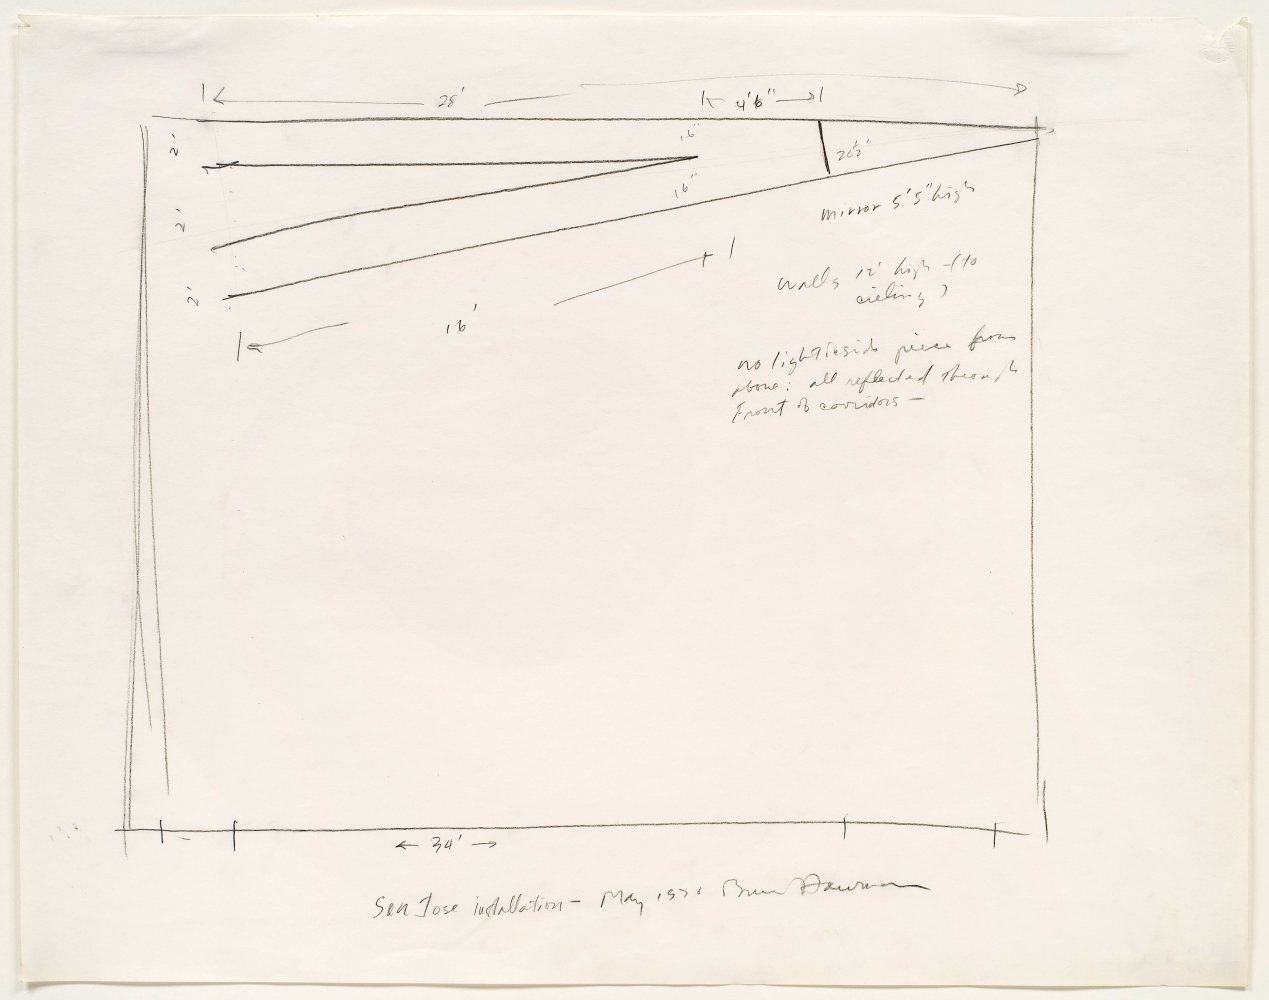 pencil drawing on paper of an installation plan with handwritten notes by the artist